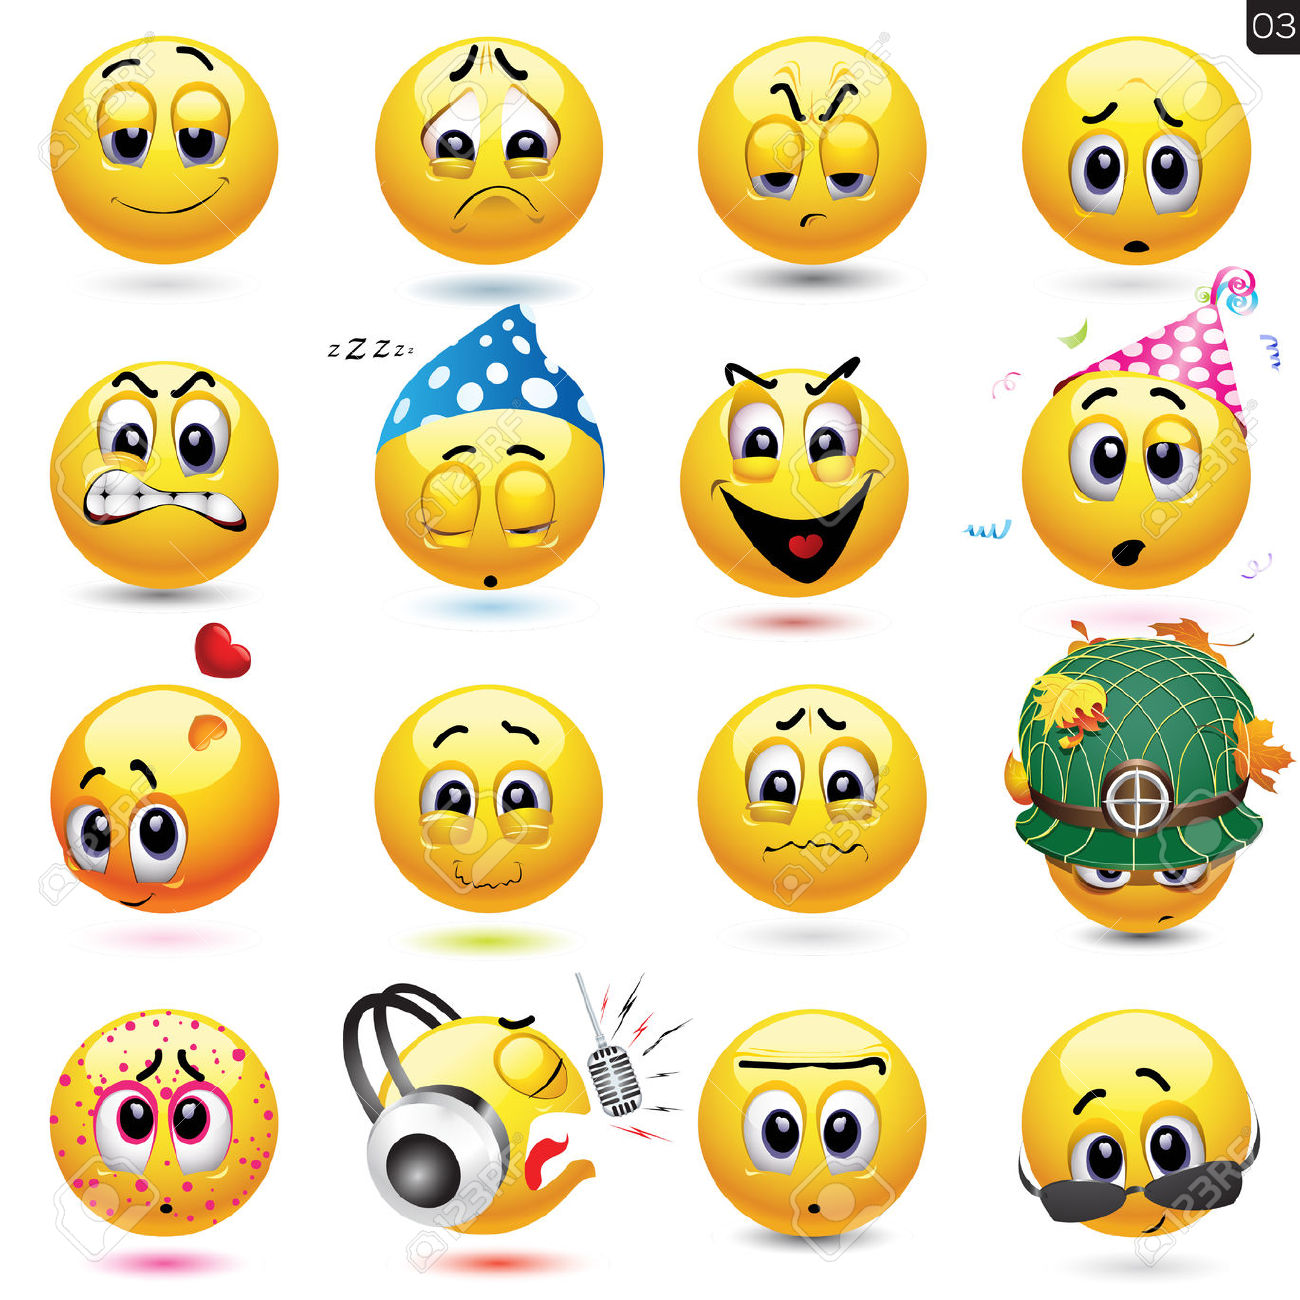 Smiley face expressions clipart.